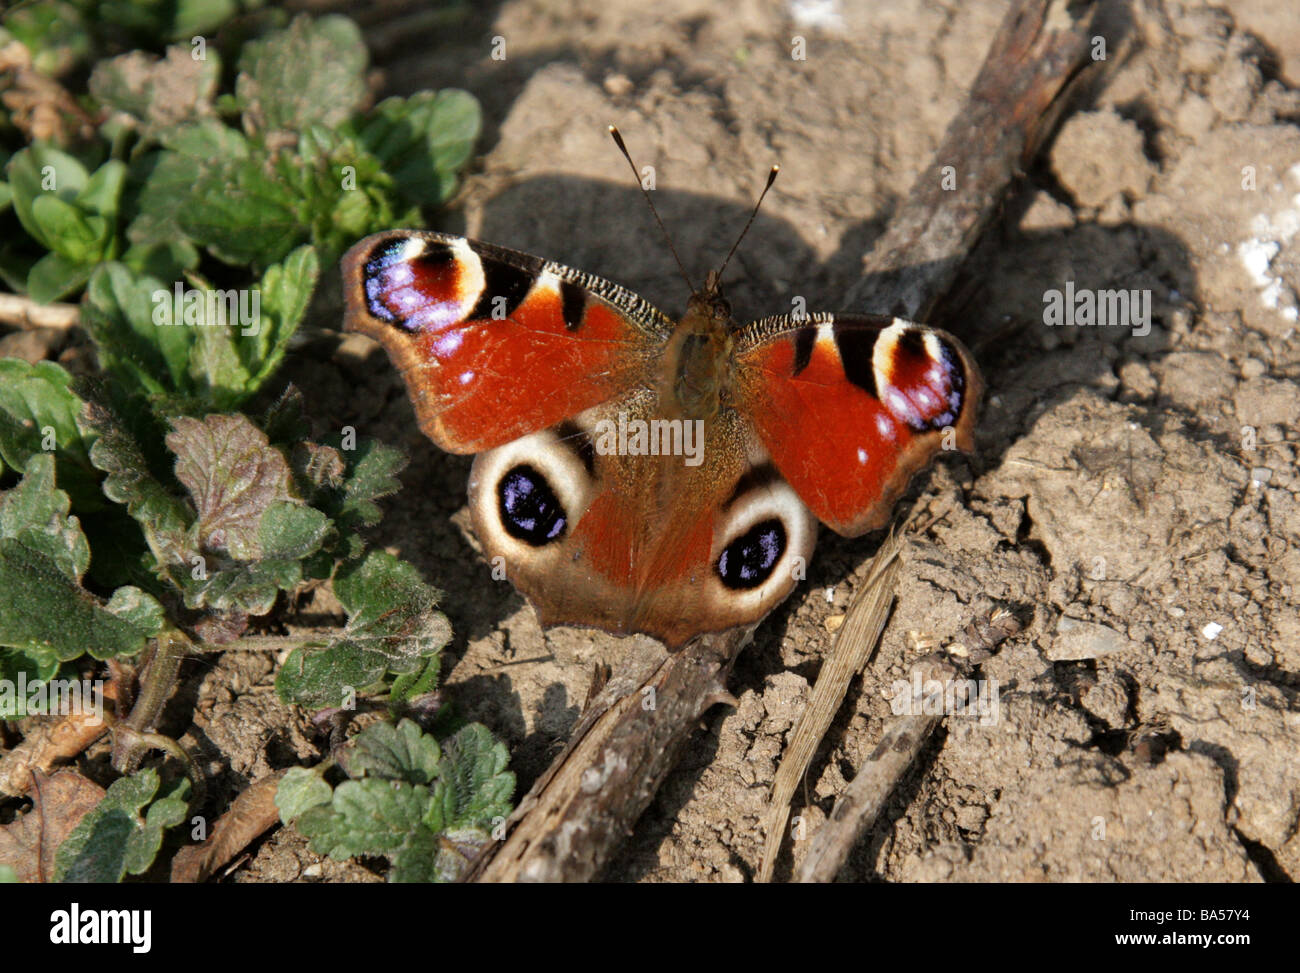 Peacock Butterfly, Inachis io, Nymphalidae - Stock Image